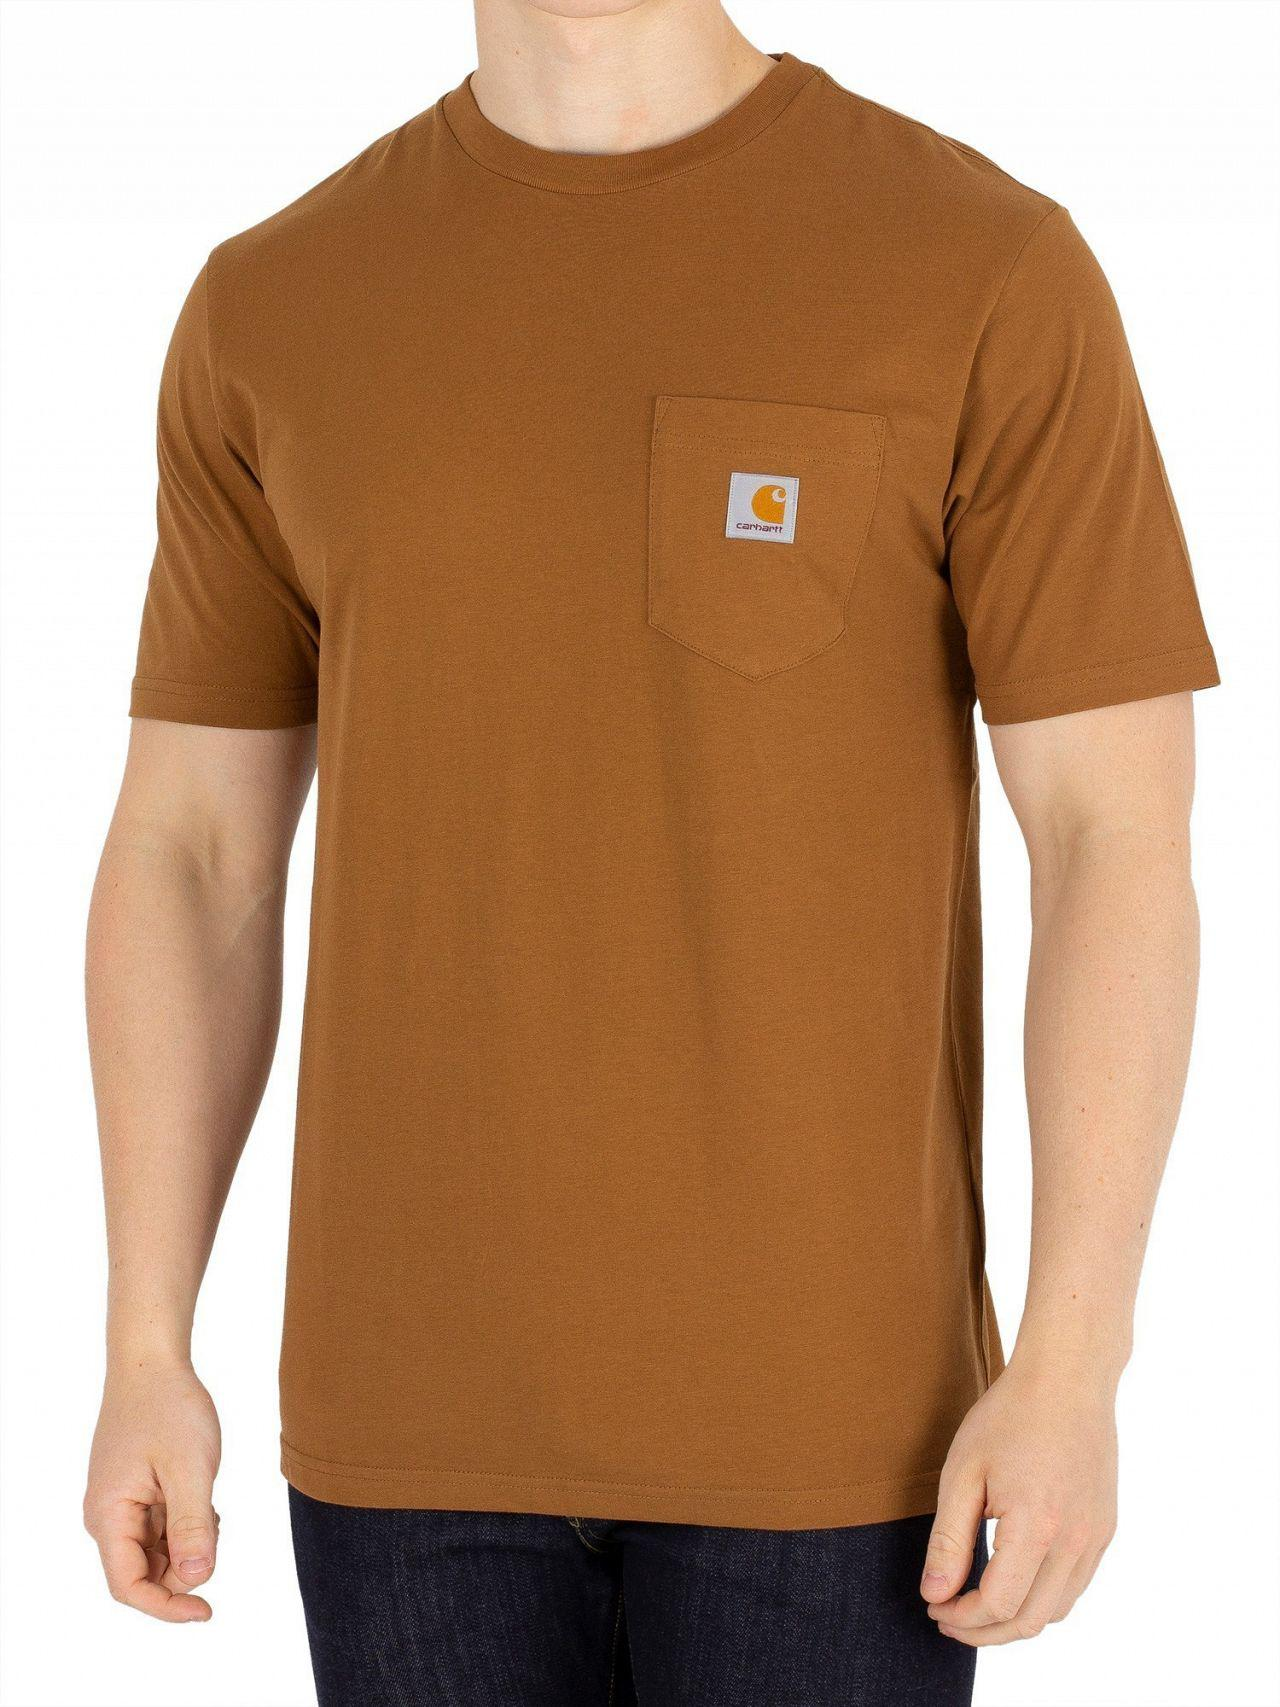 huge selection of best prices superior quality Hamilton Brown Pocket T-shirt